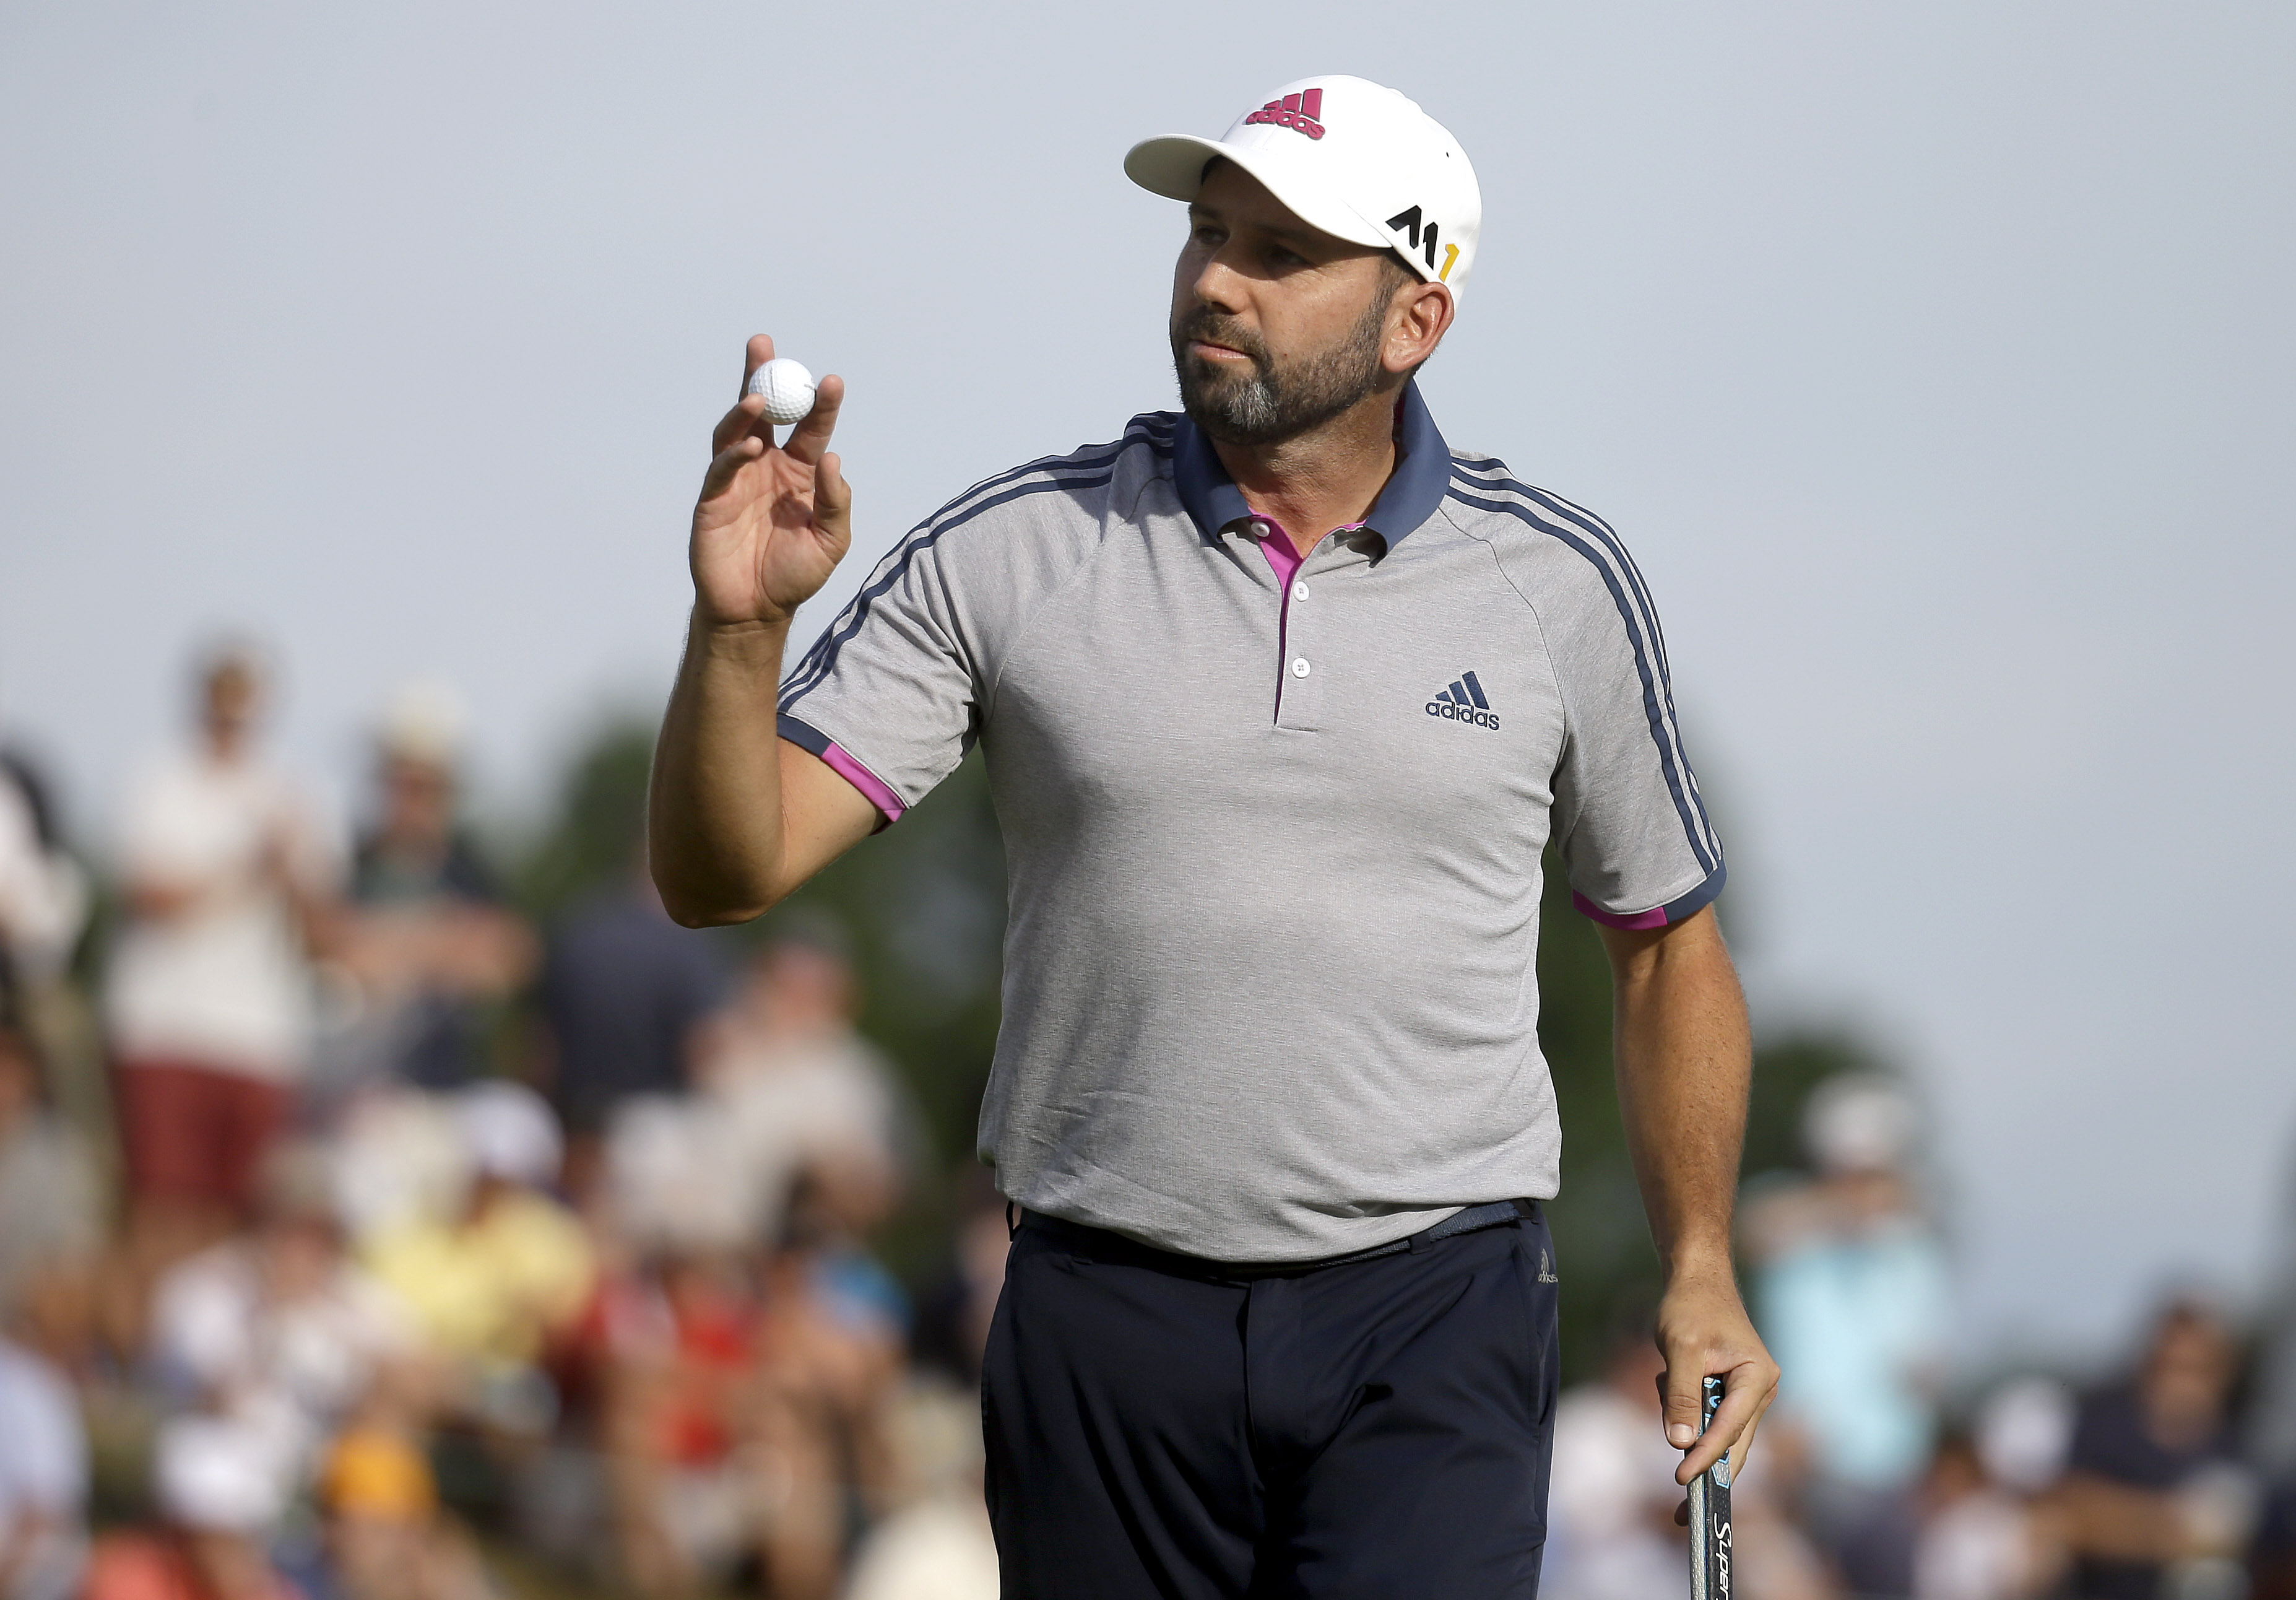 Sergio Garcia, of Spain, reacts to his putt on the sixth hole during third round of the U.S. Open golf championship at Oakmont Country Club on Saturday, June 18, 2016, in Oakmont, Pa. (AP Photo/John Minchillo)